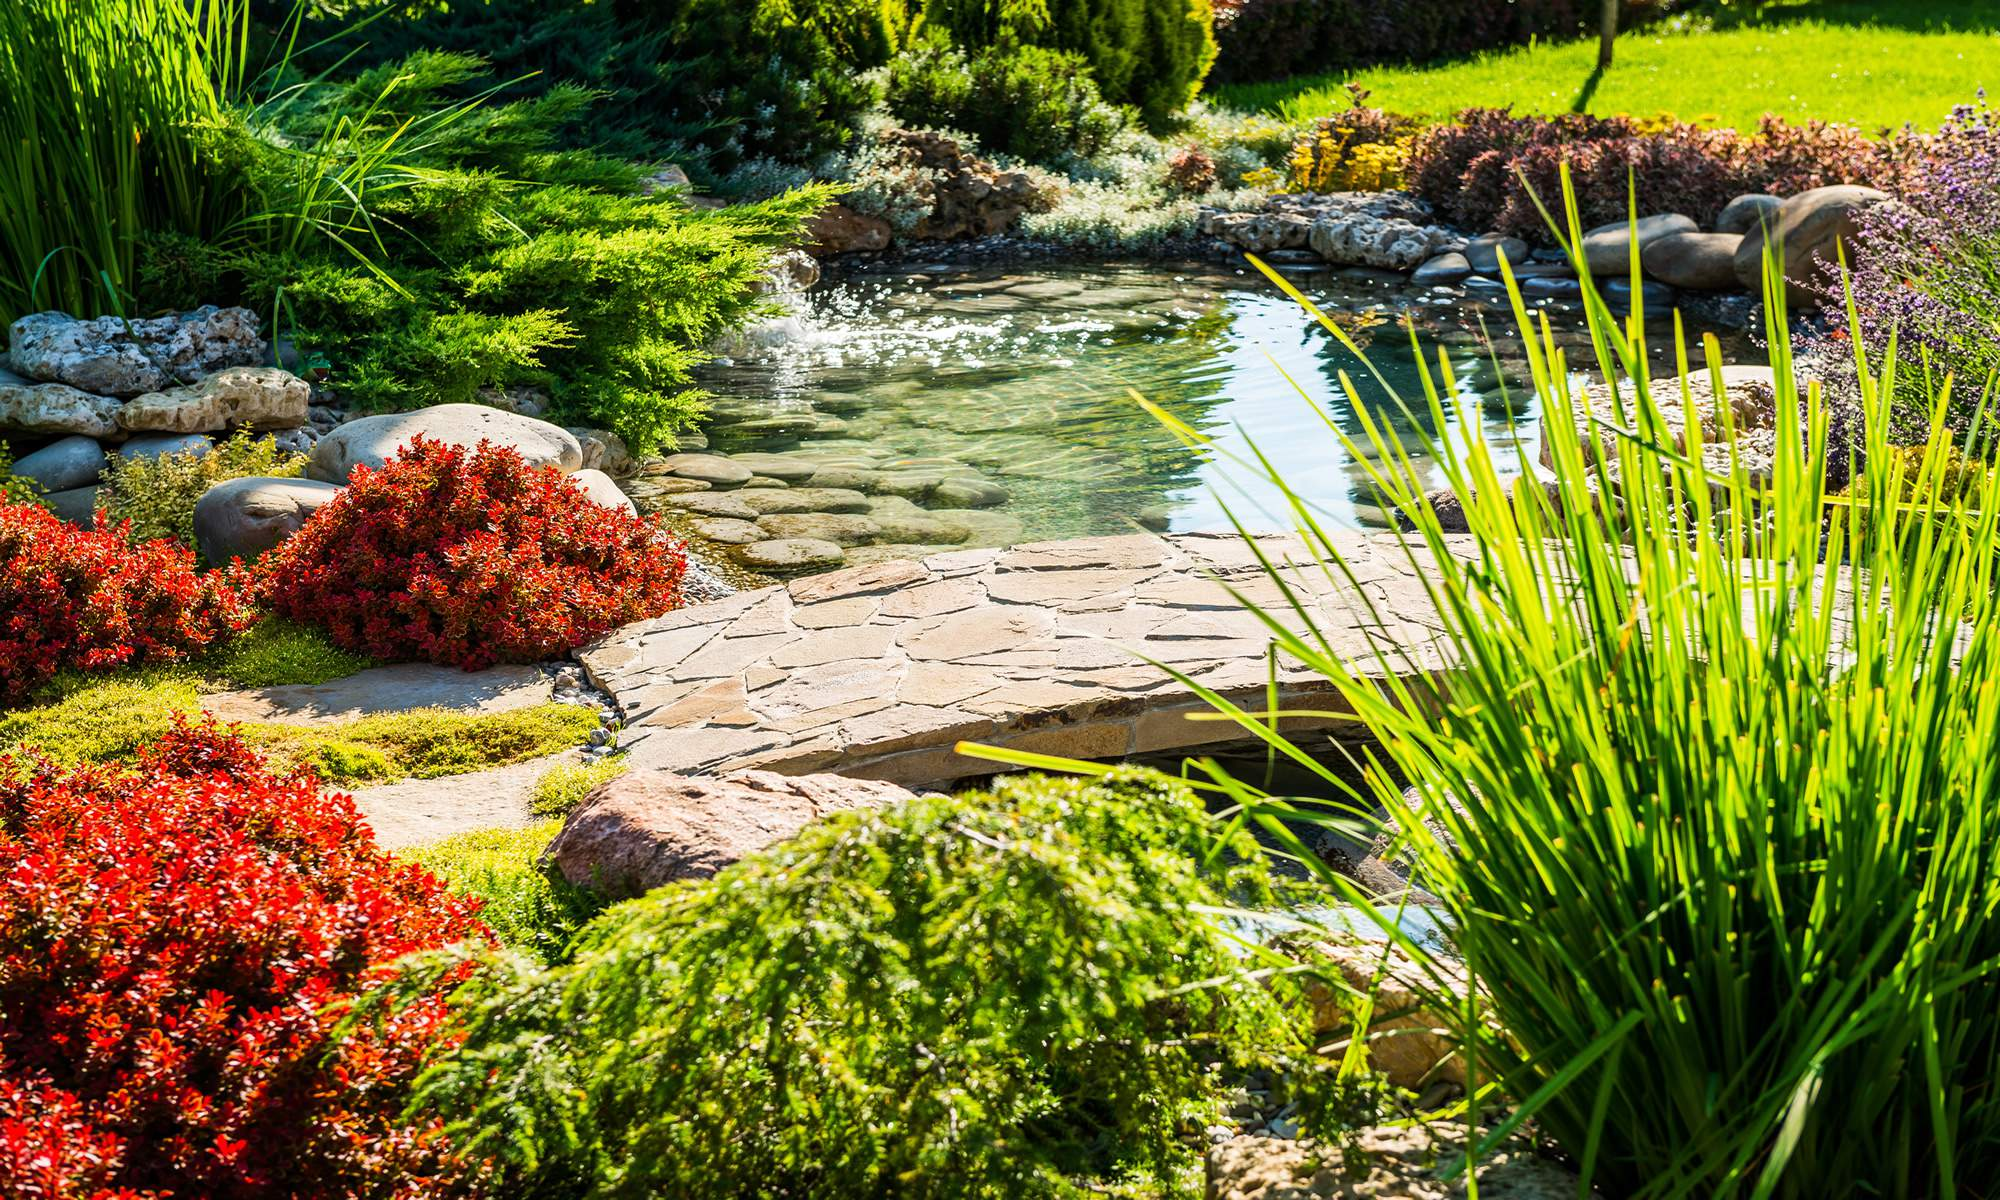 Martinez Landscaping designs beautiful outdoor spaces